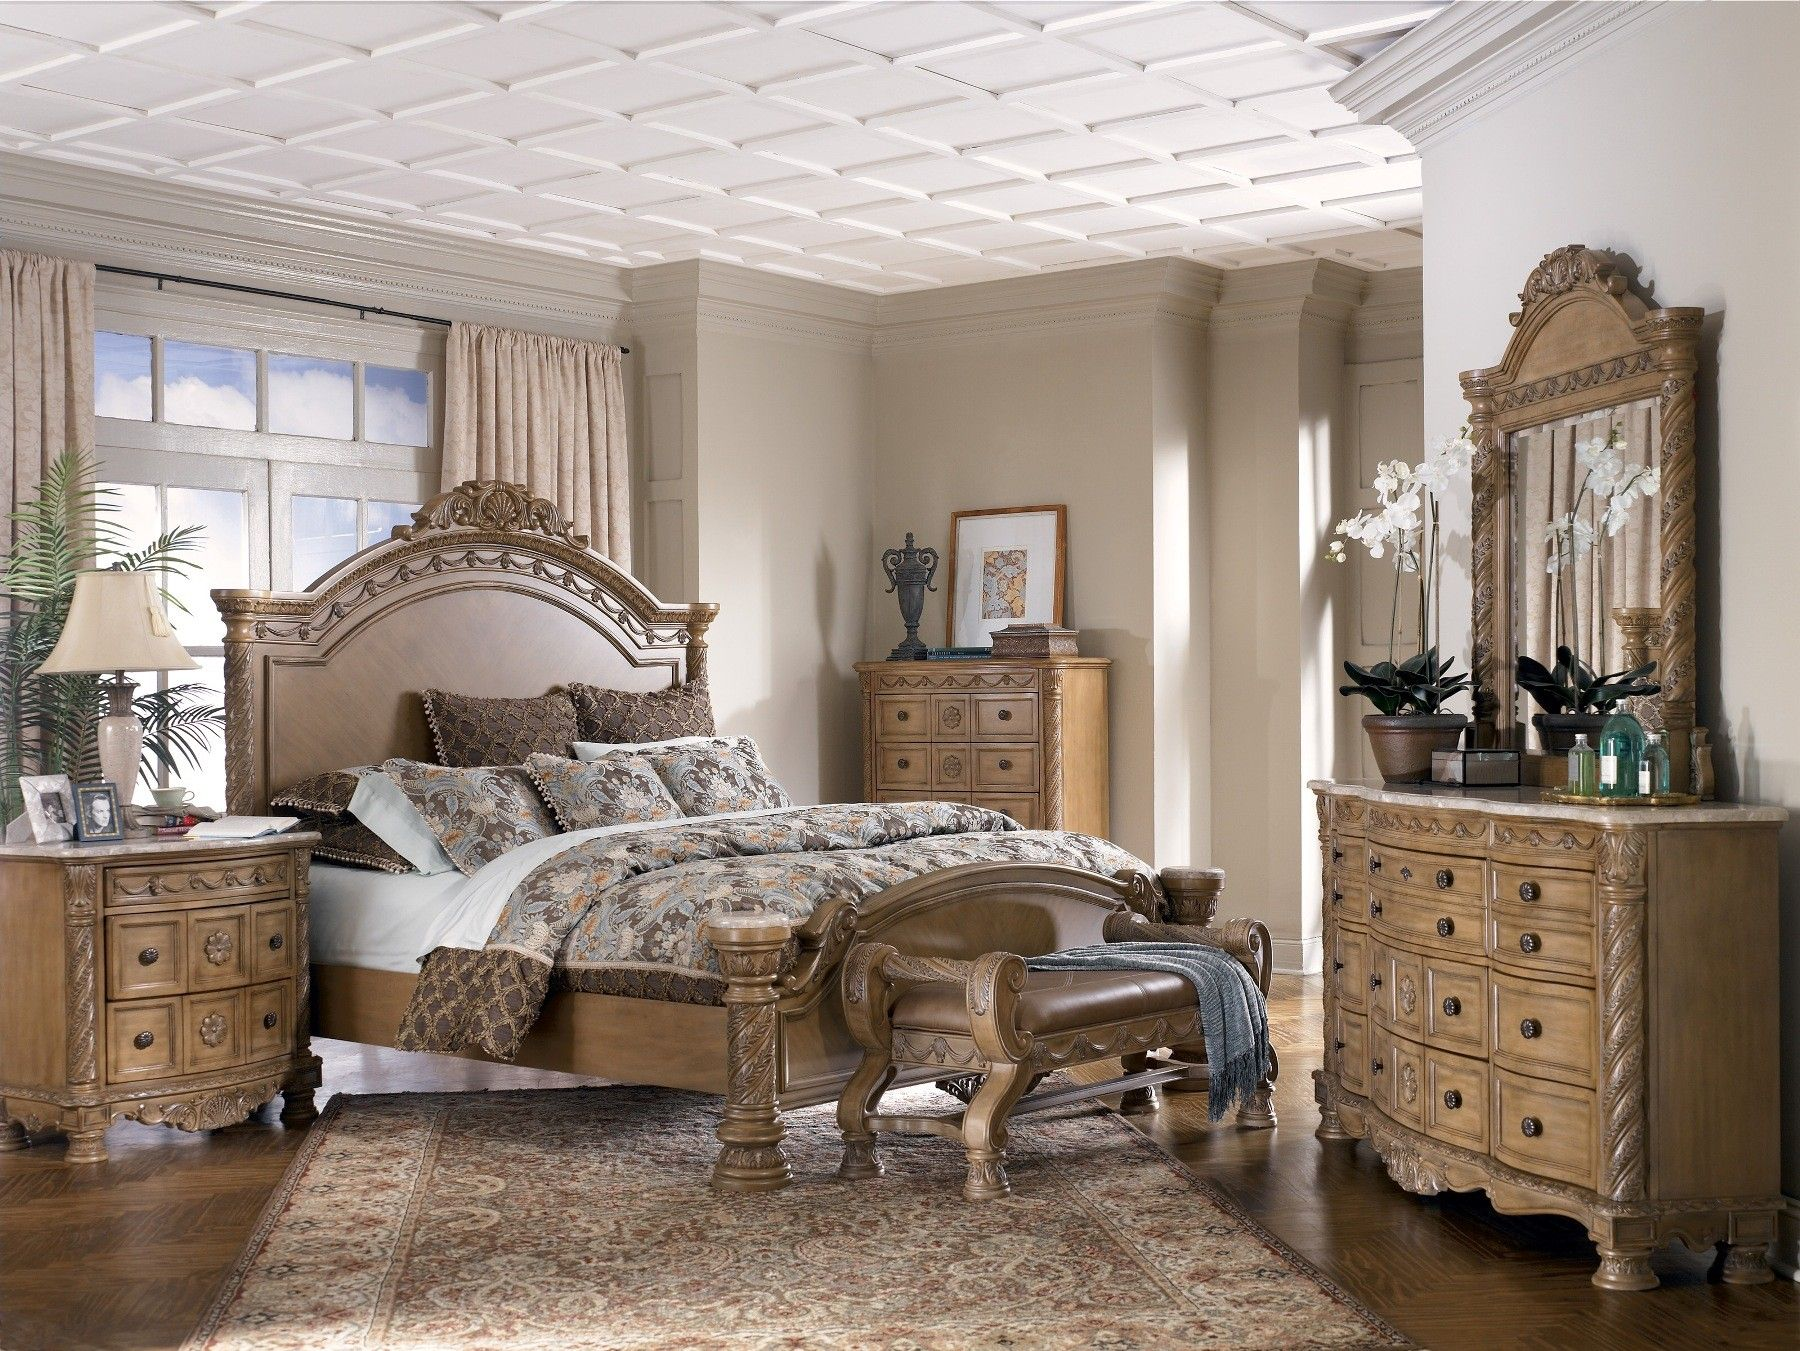 Ashley furniture gallery ashley furniture south coast - Ashley furniture bedroom packages ...